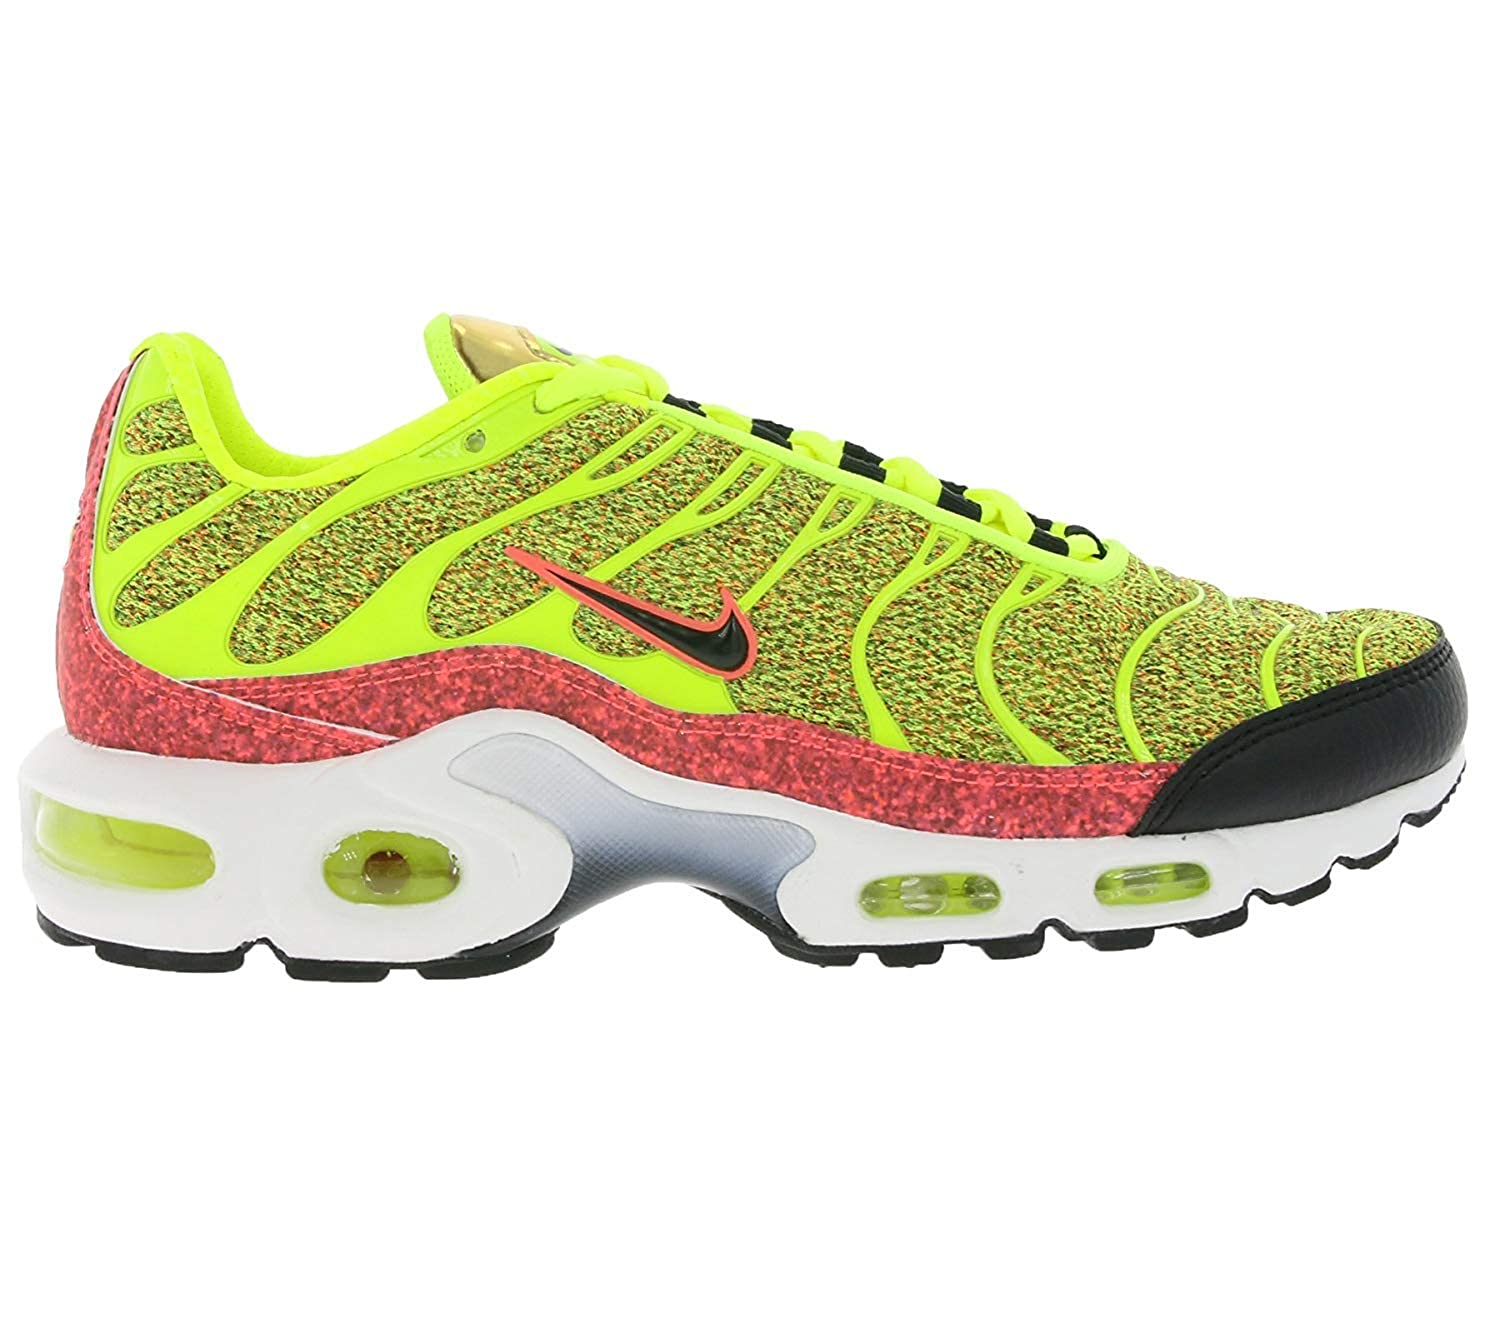 d97a2b5fe6 NIKE Womens Air Max Plus Se Womens Running Trainers 862201 Sneakers Shoes  (UK 4.5 US 7 EU 38, red Stardust sail 600): Amazon.co.uk: Shoes & Bags